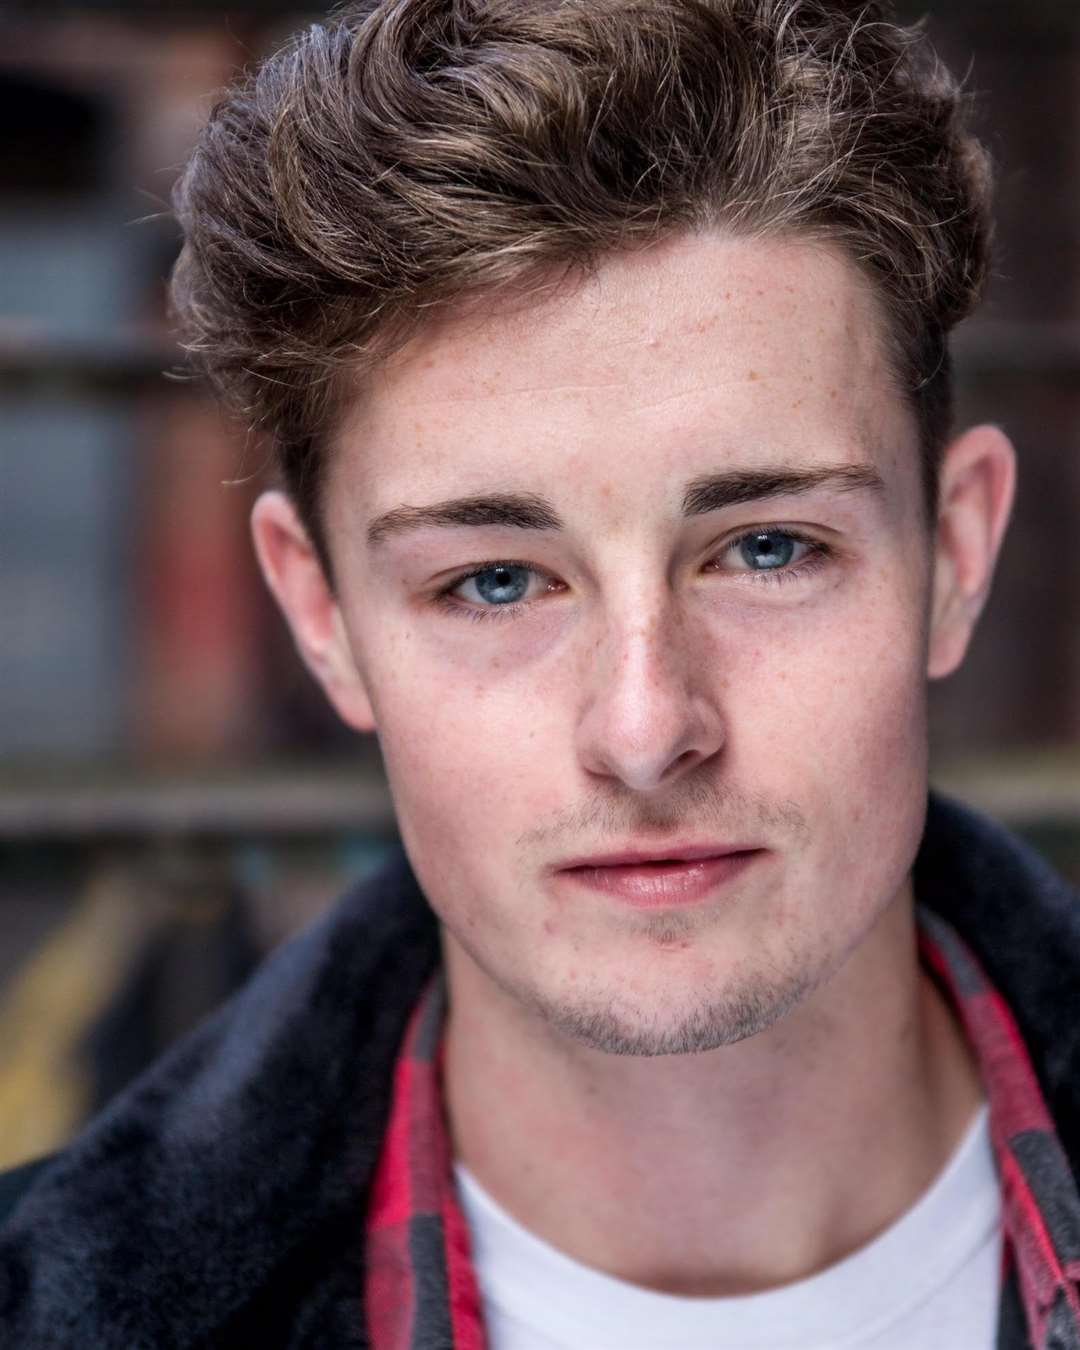 LEAD ROLE: Matt Wainwright will play Dick Whittington.